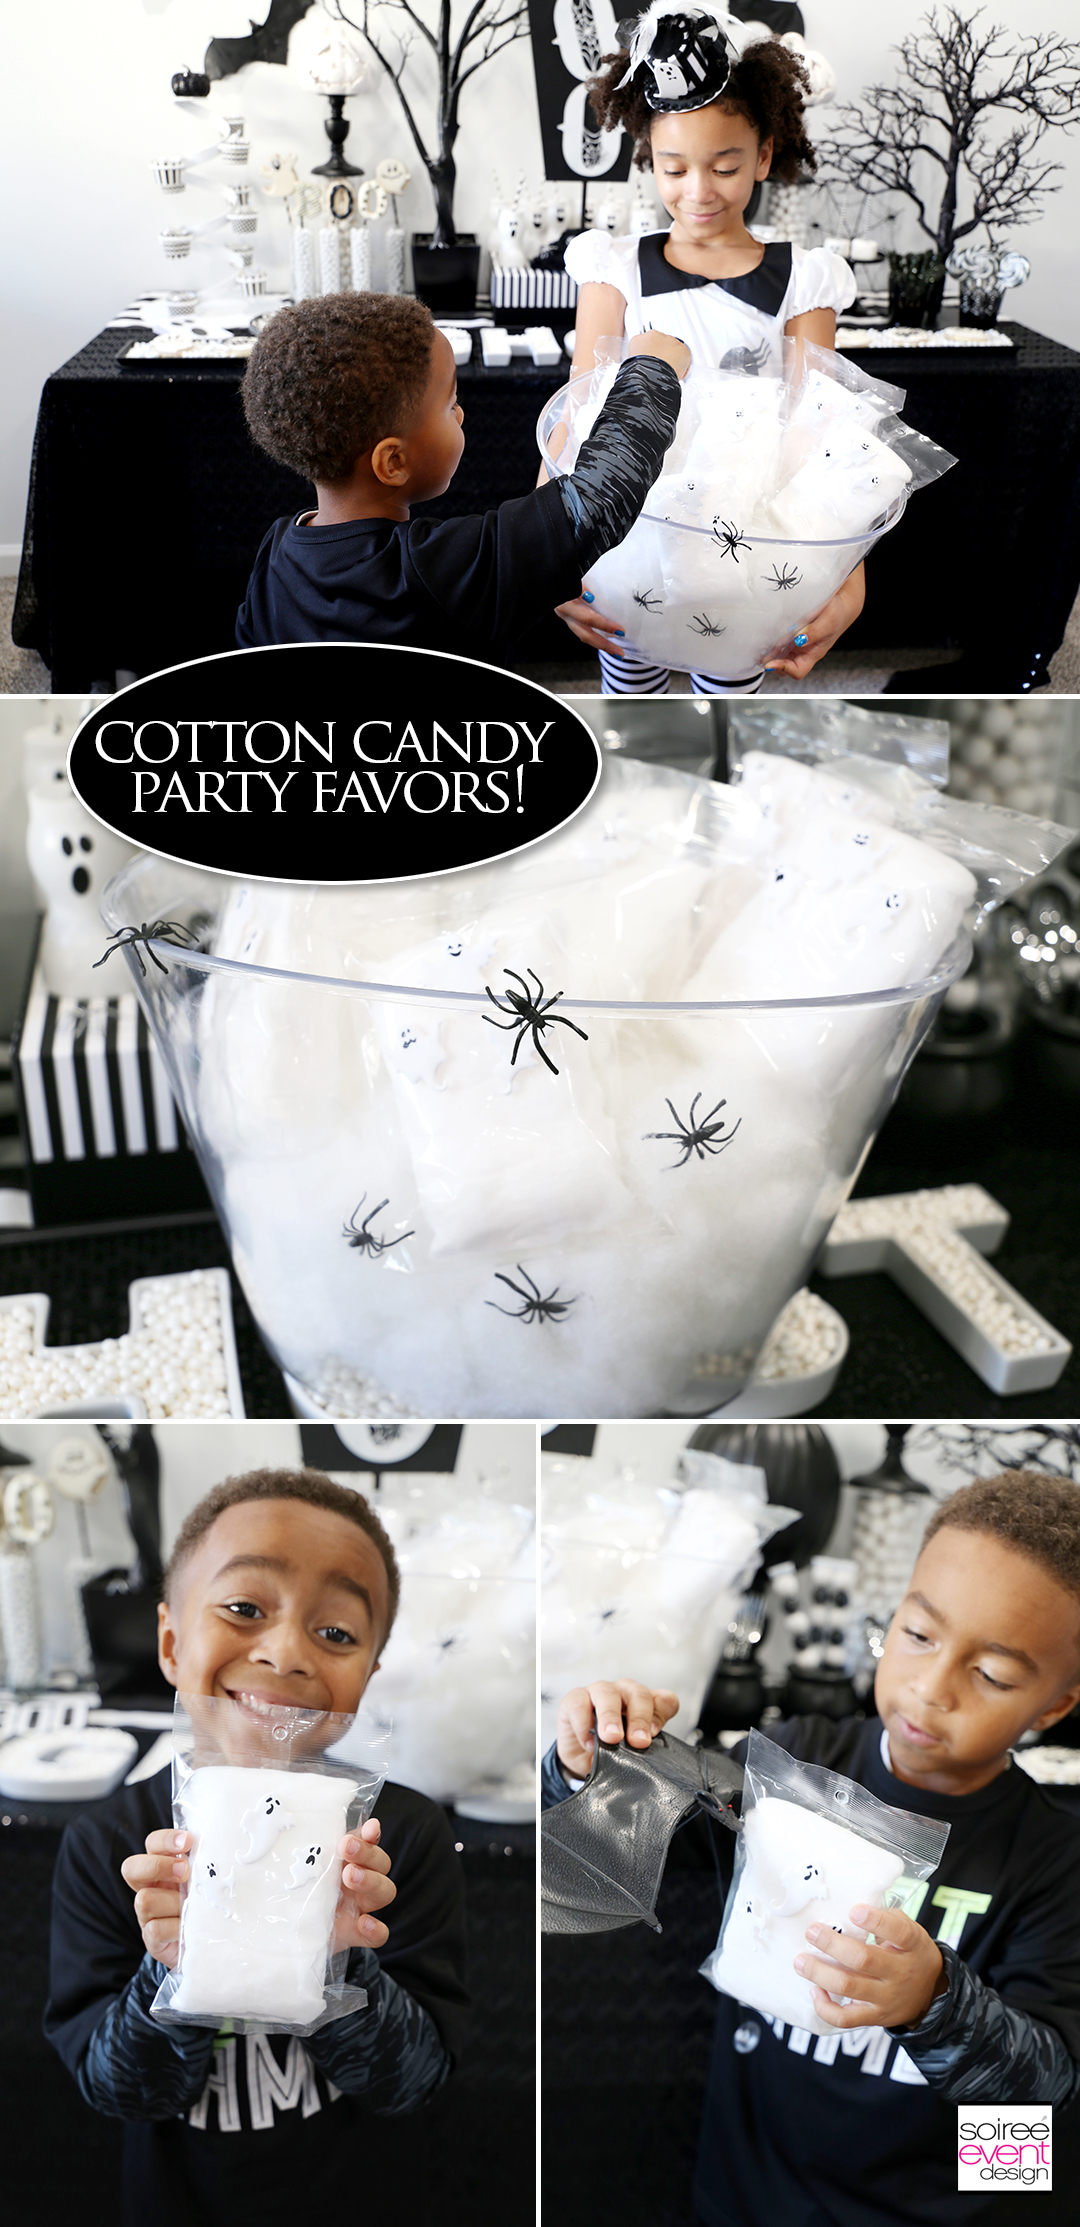 Halloween Desserts - Cotton Candy party favors